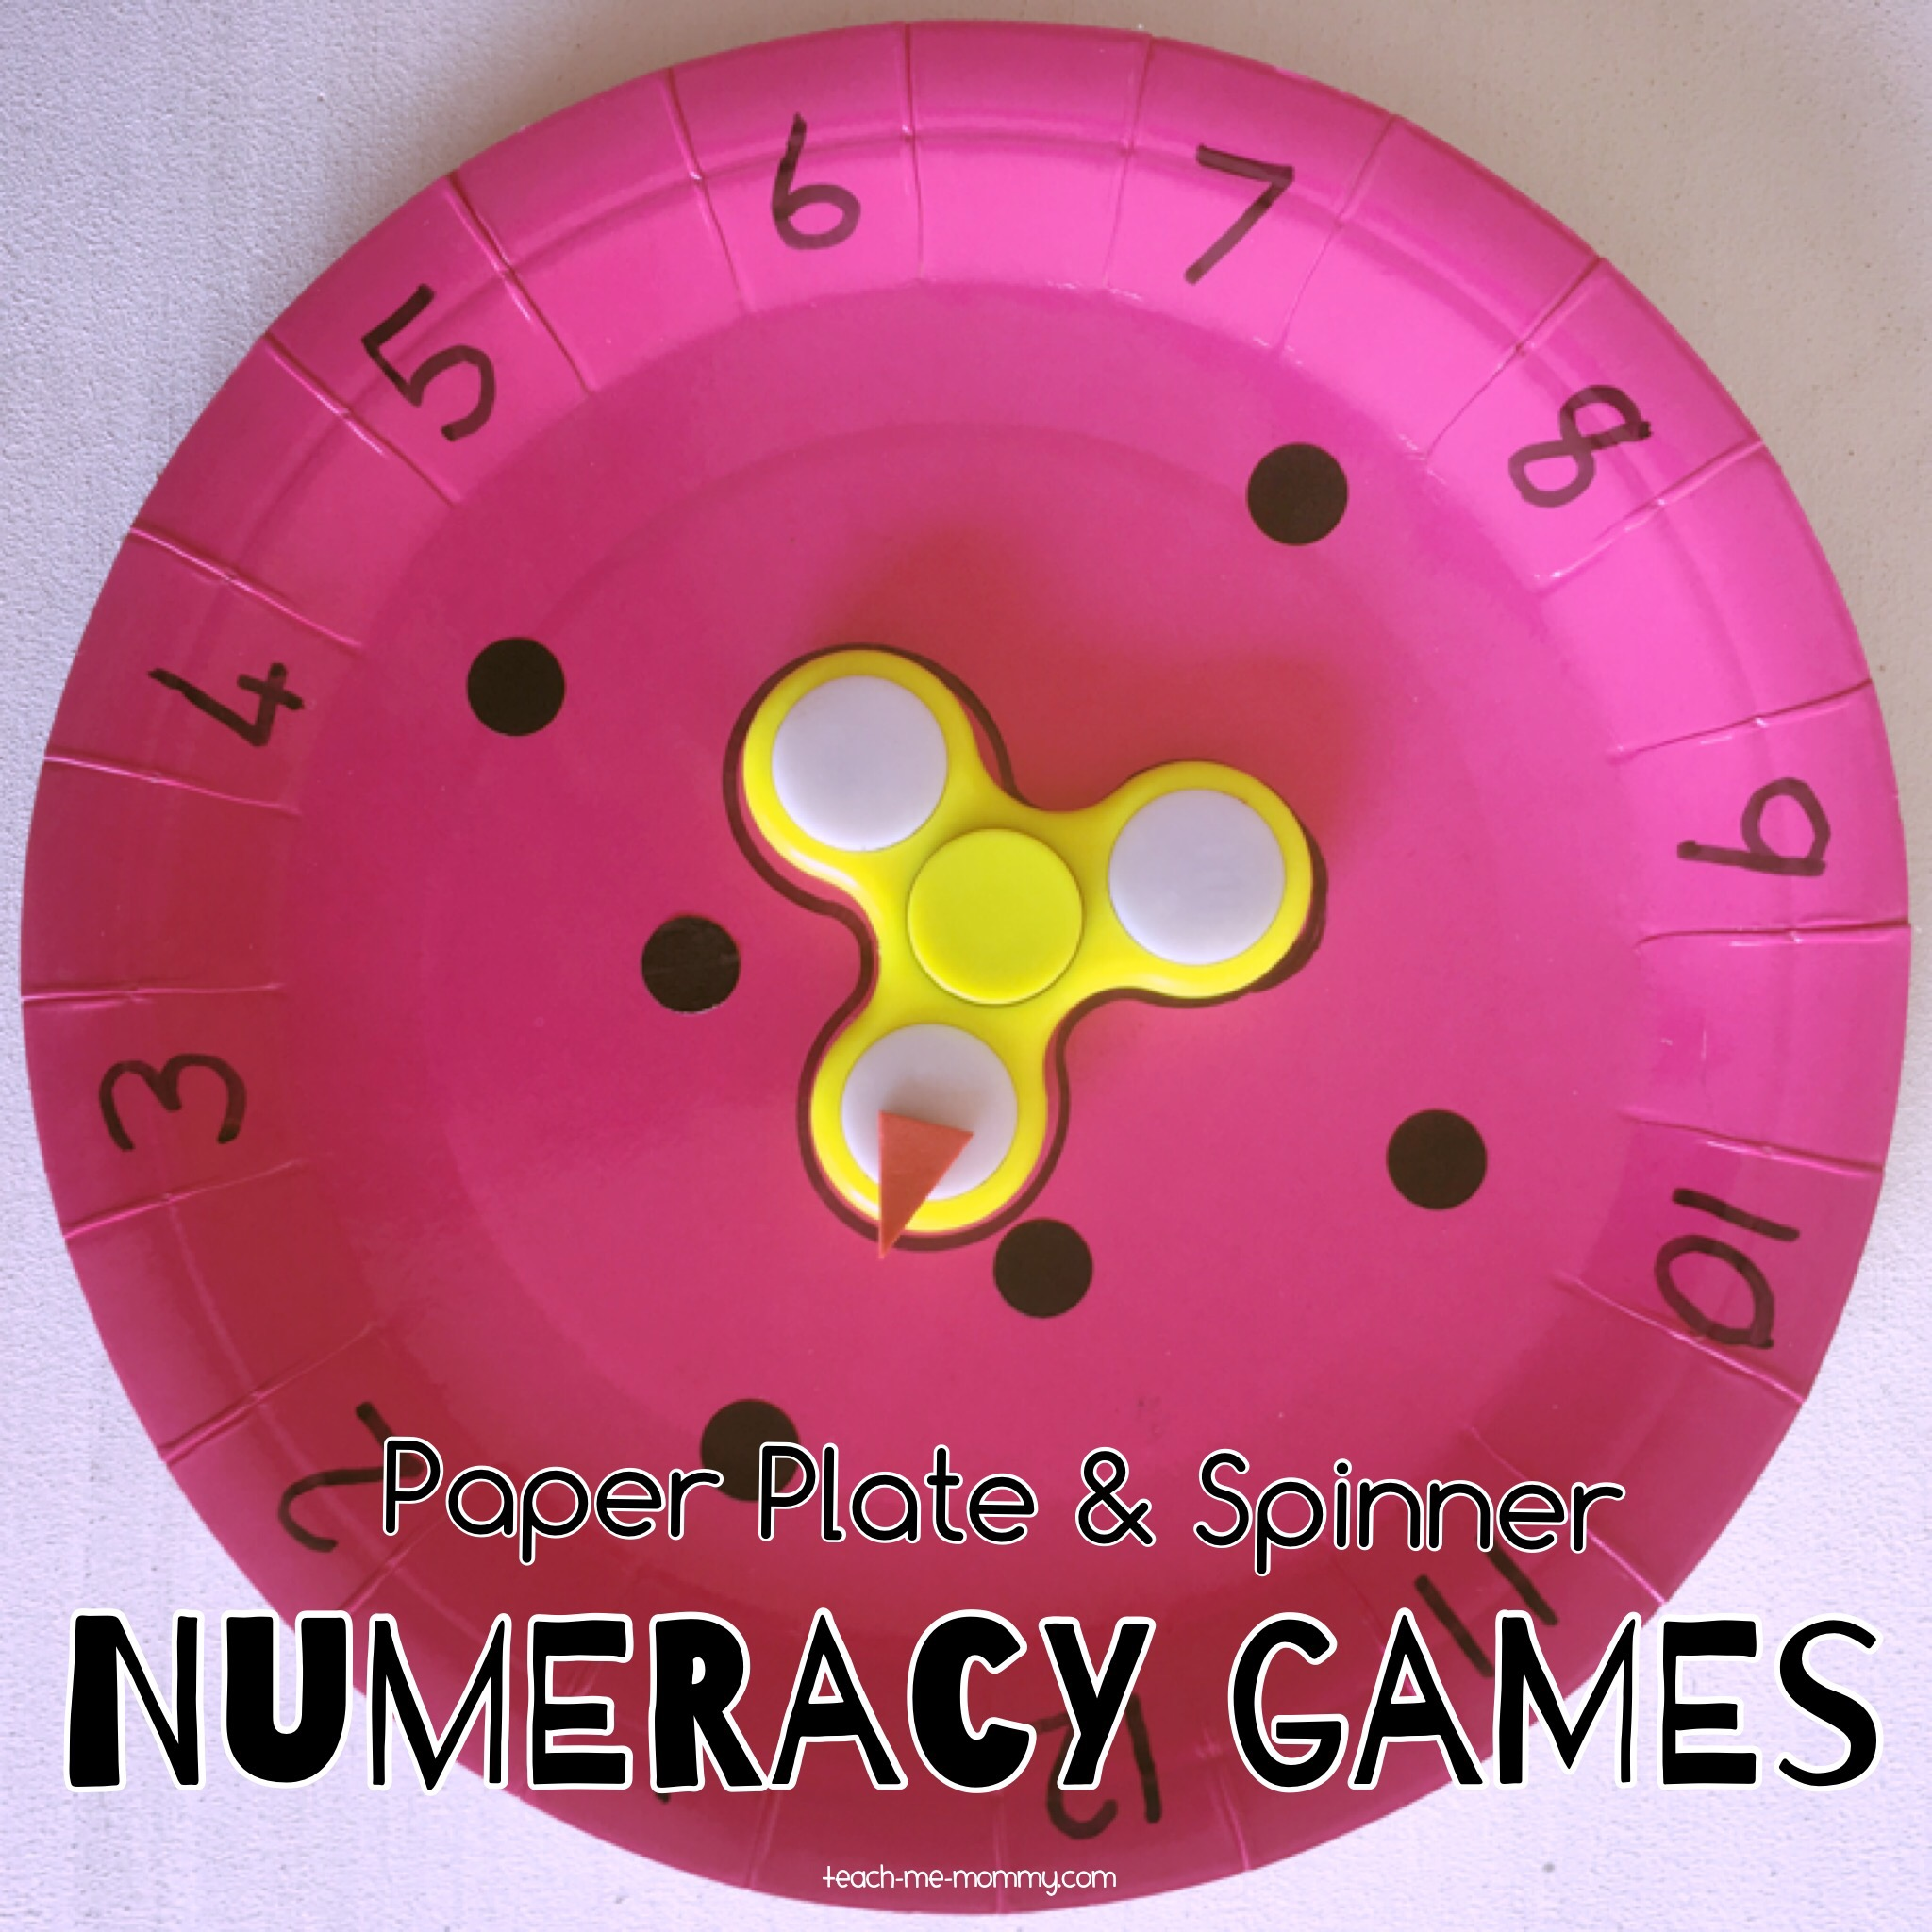 Paper Plate and spinner numeracy games